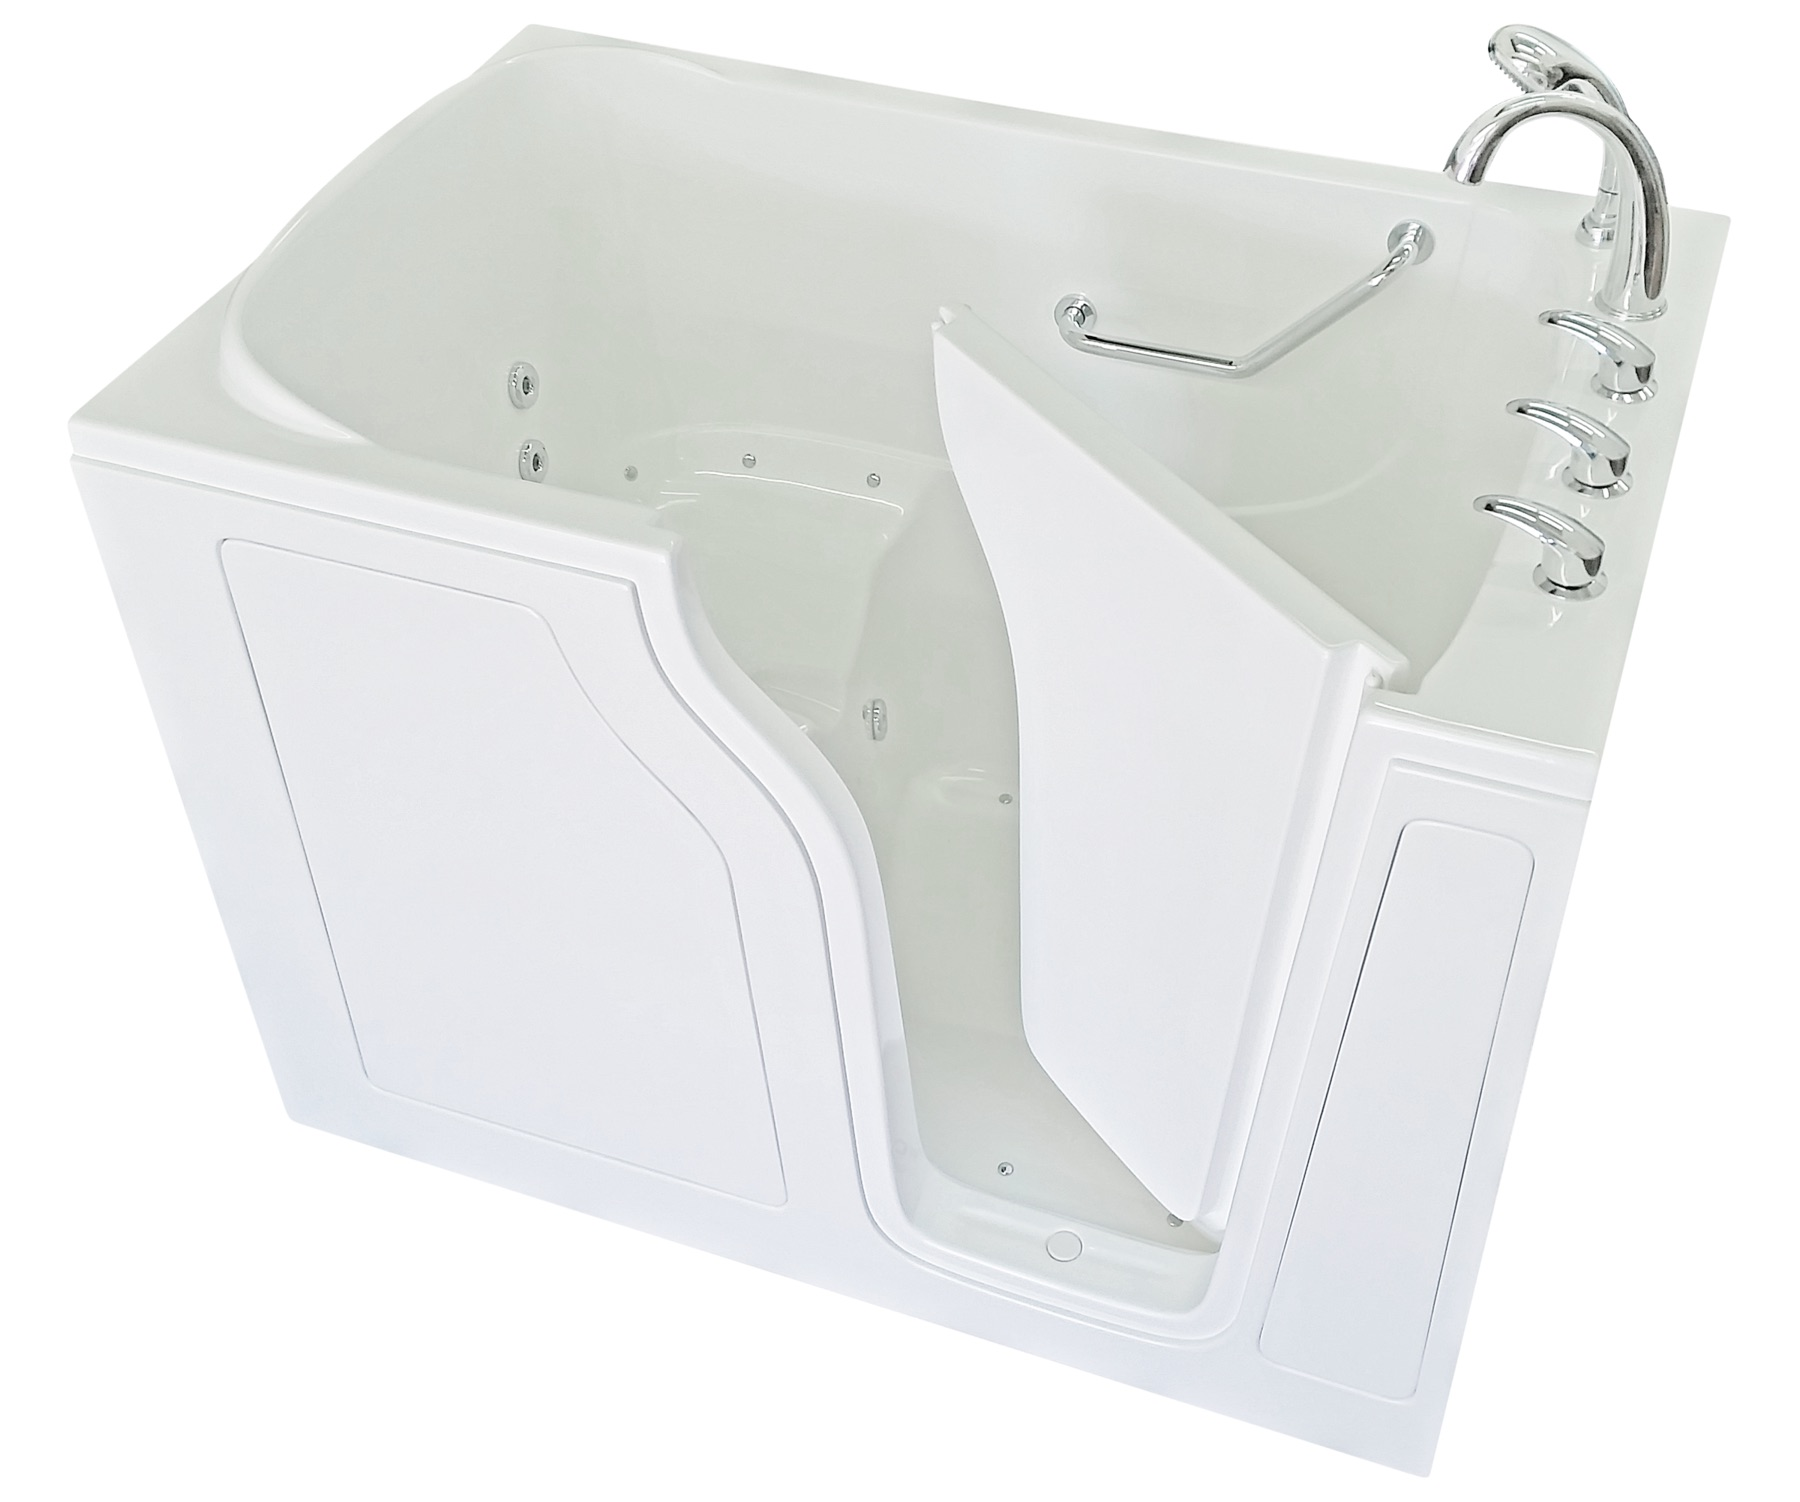 A Hydrotherapy Walk In Bathtub: This Is A Step Up From The Soaker Tub, With  Added Features Such As A Water And Air Jet That Is Favorable Due To Its  Soothing ...